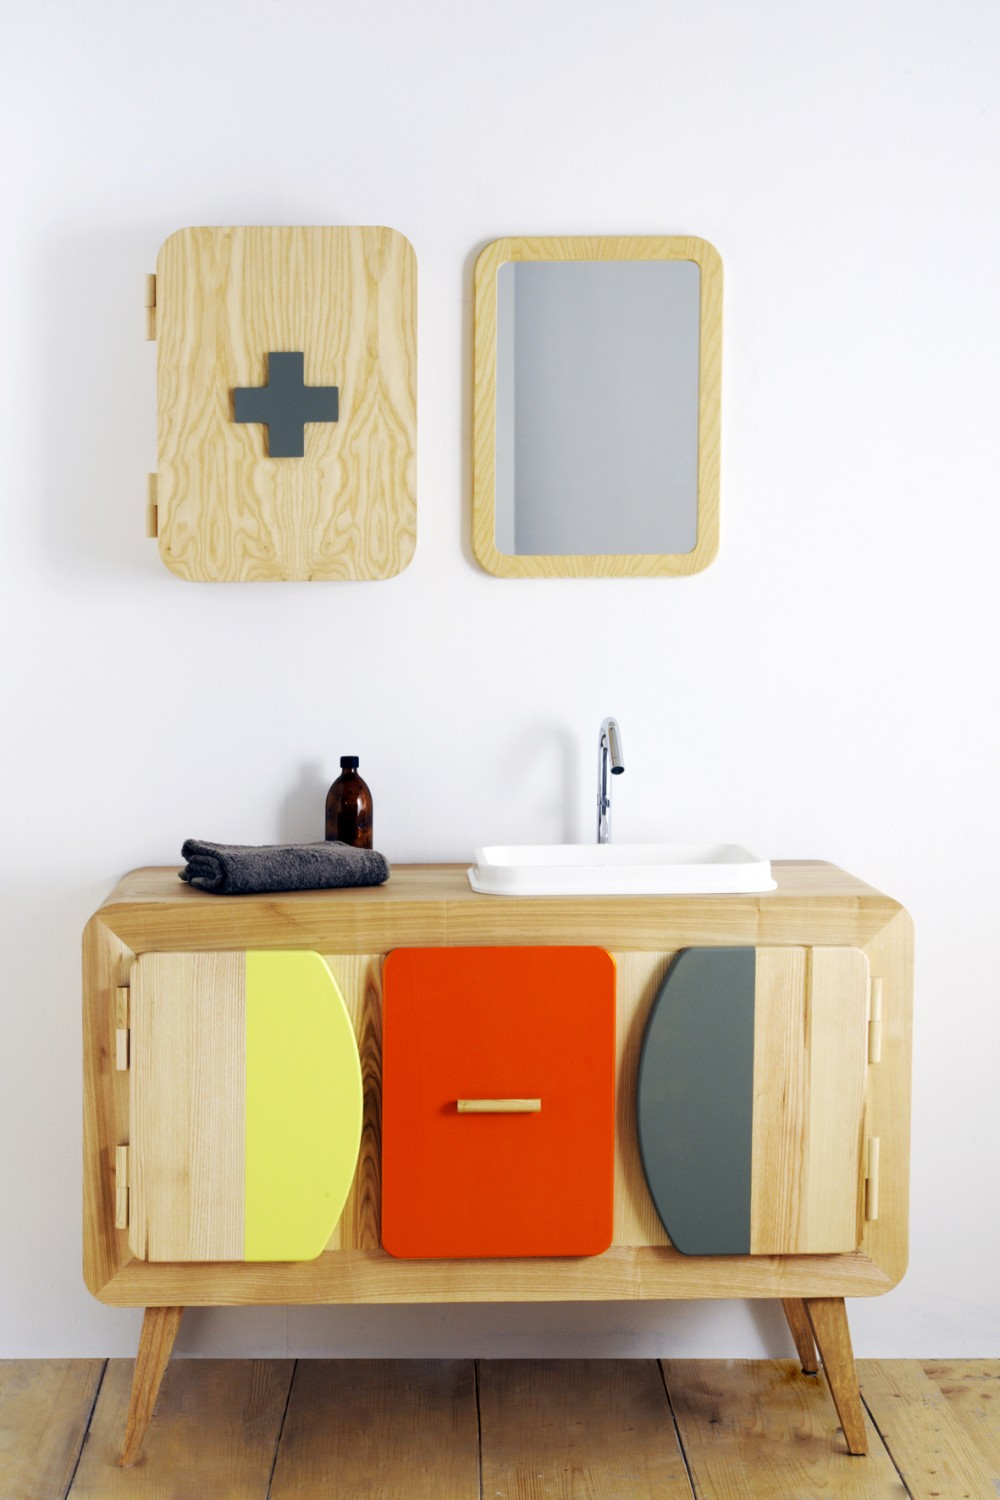 Sanijura jules bathroom furniture flodeau for Pharmacie de salle de bain